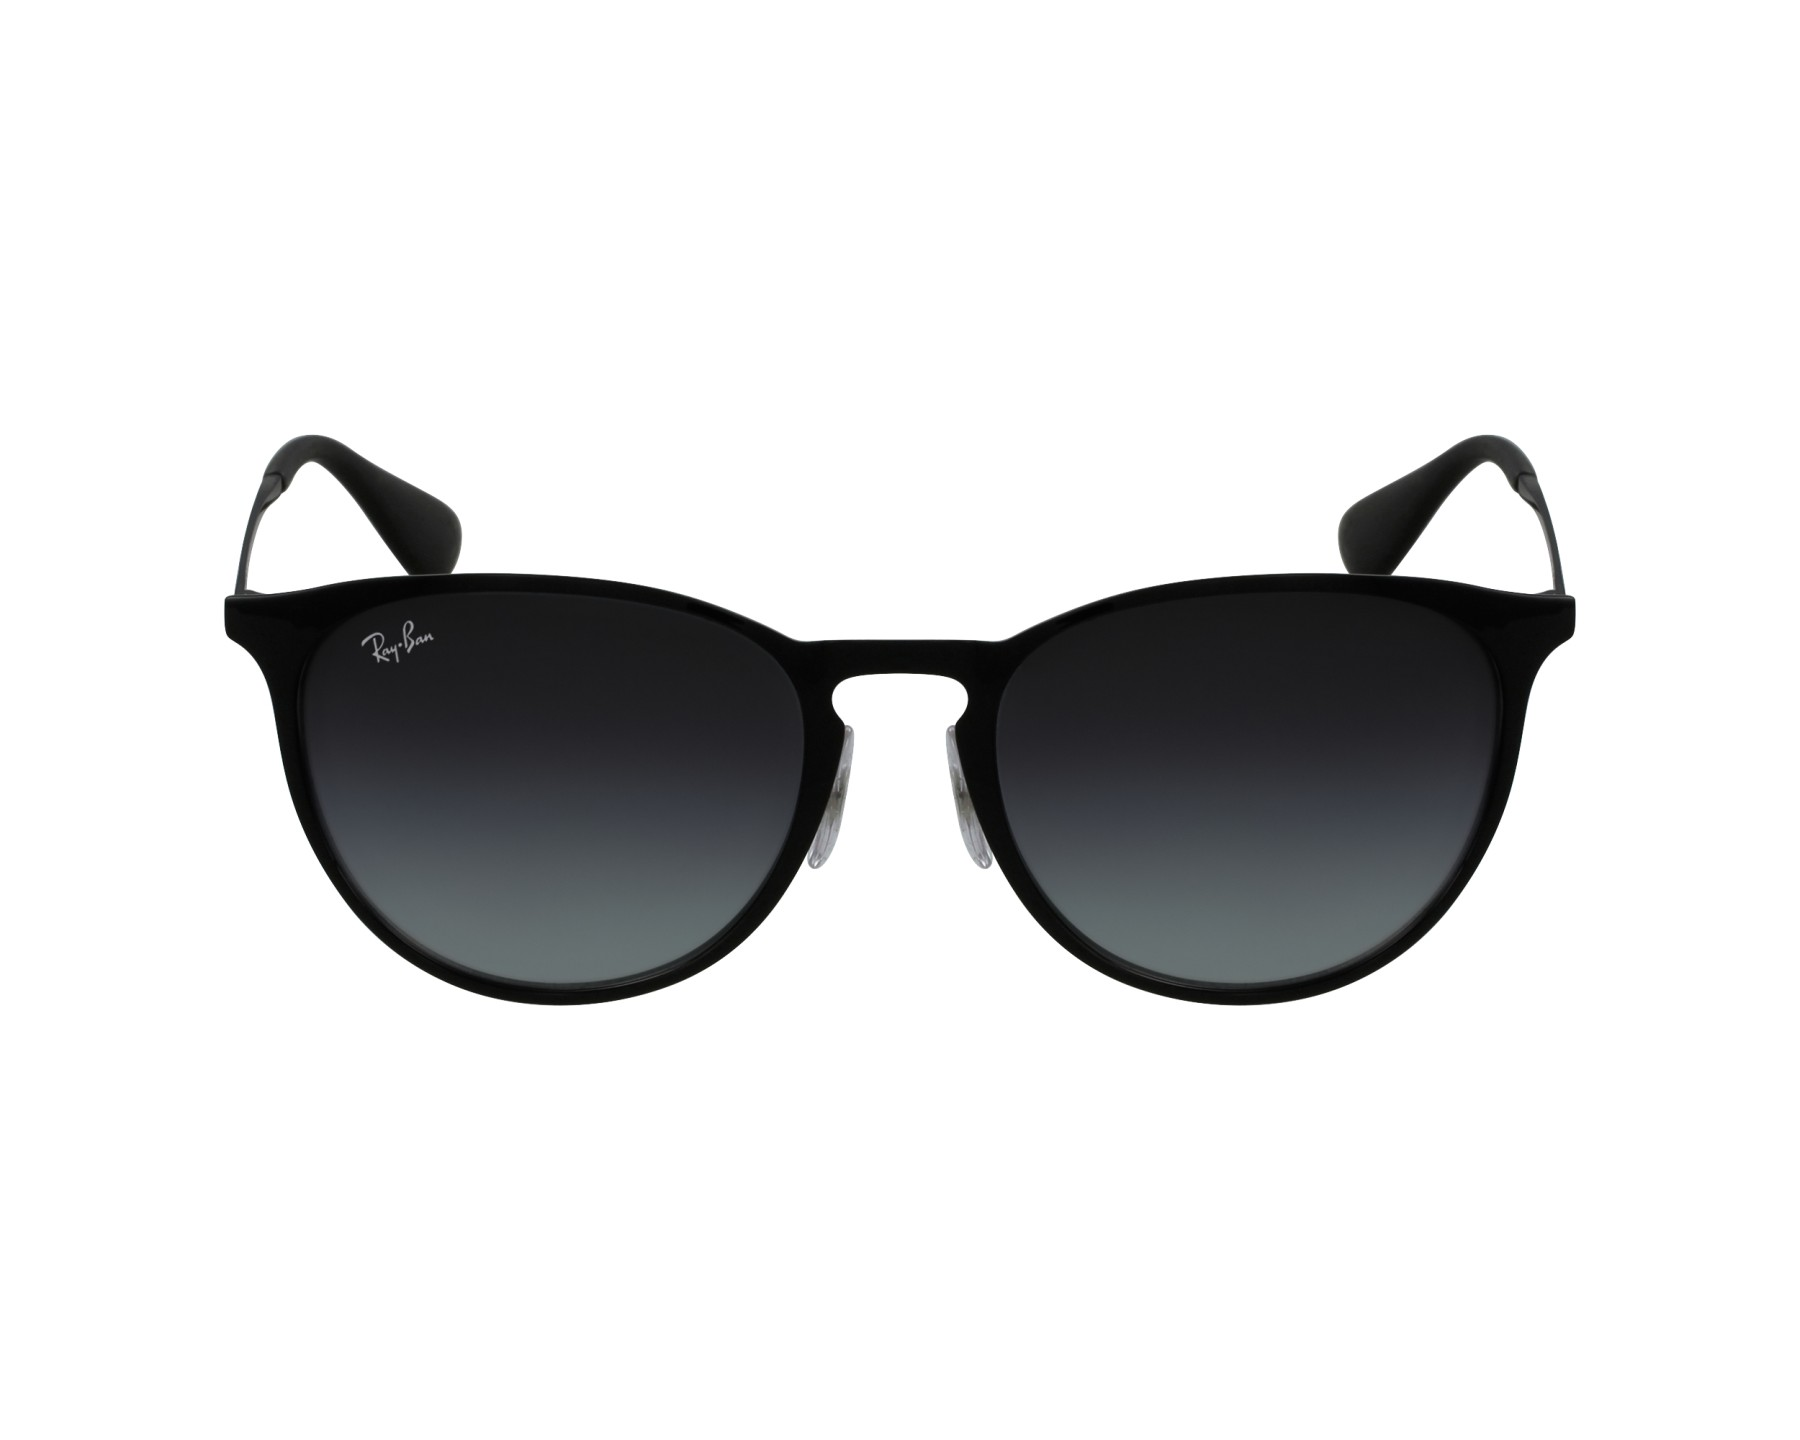 eed7076af33 Sunglasses Ray-Ban RB-3539 002 8G 54-19 Black profile view